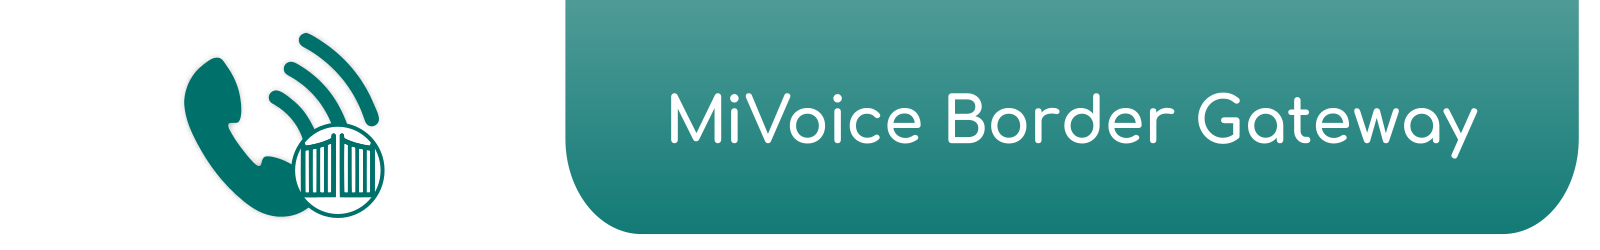 Mitel MiVoice Border Gateway - Electronic Communication Services